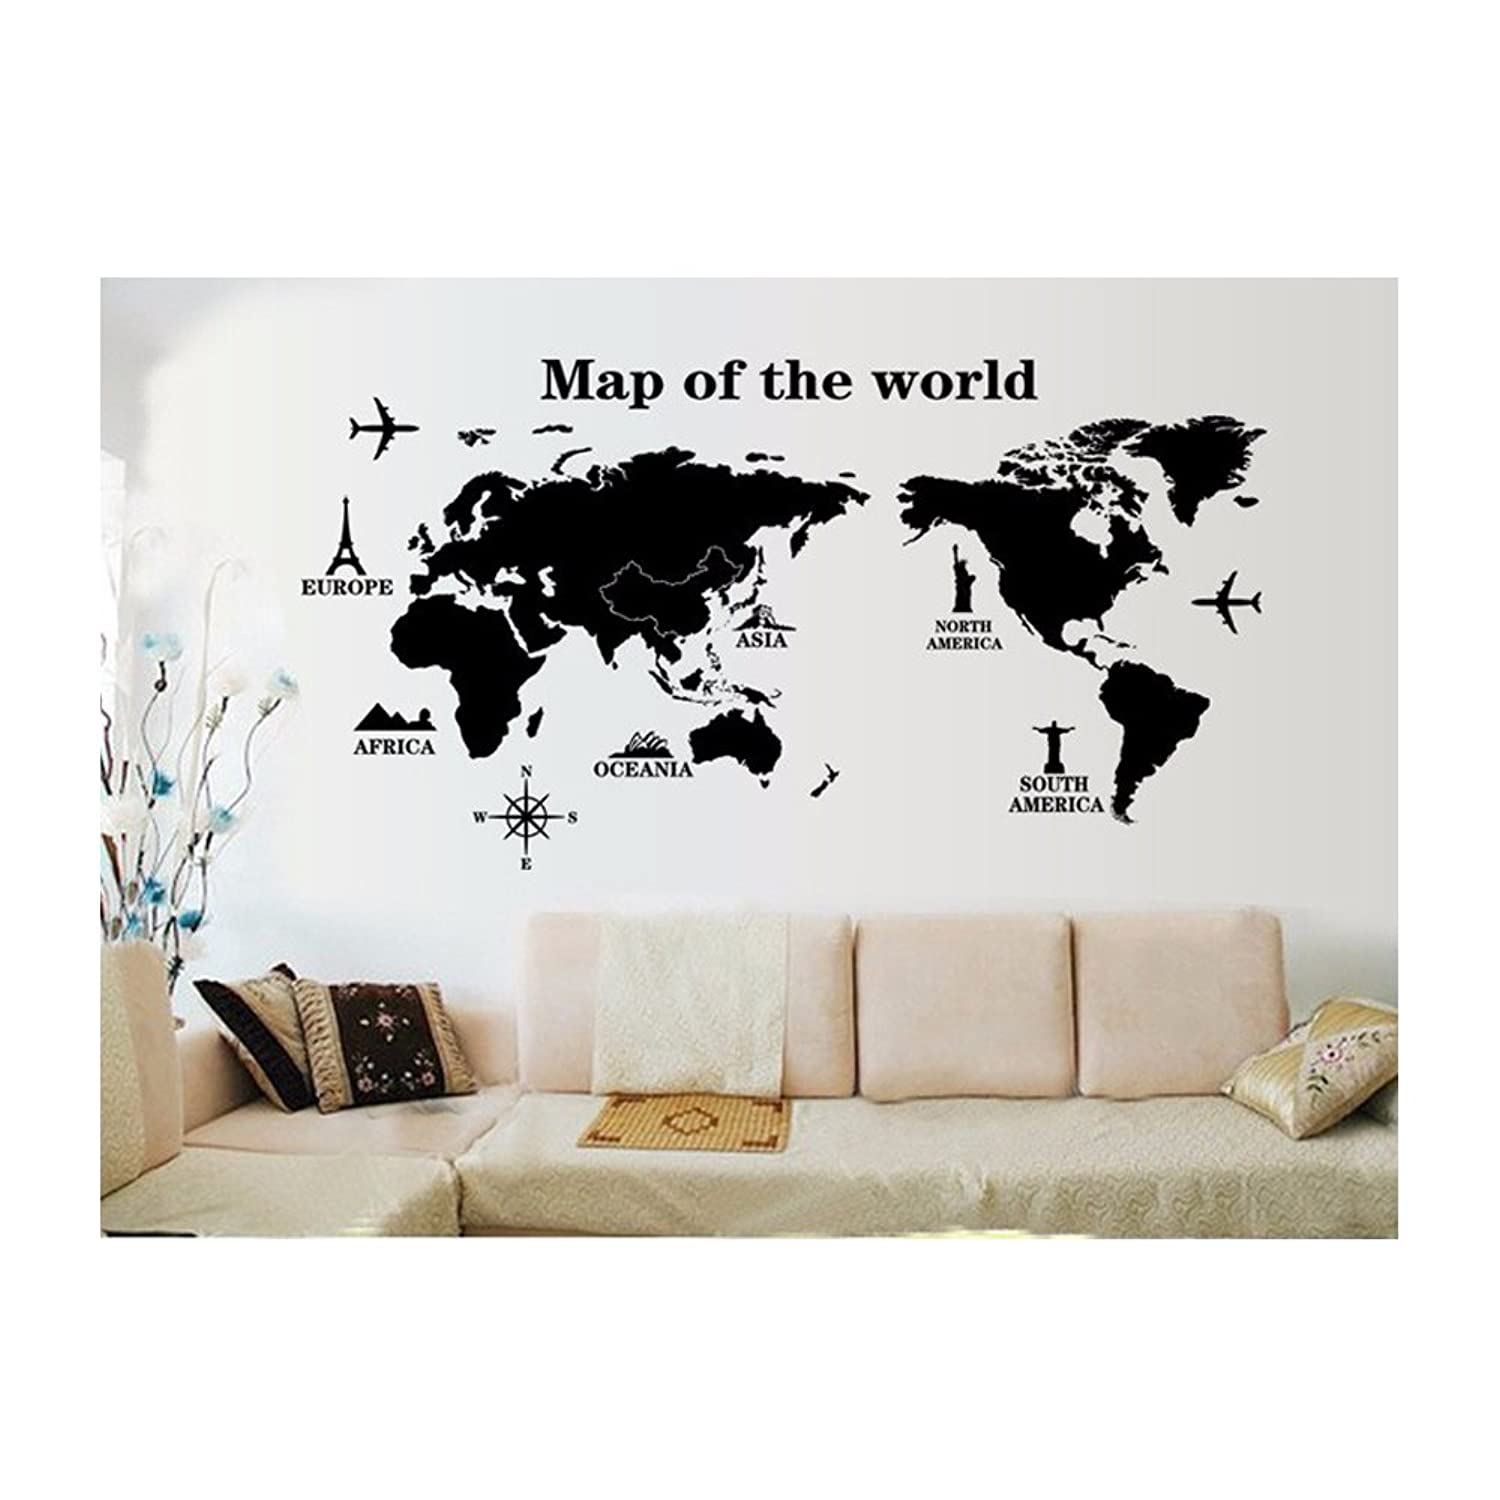 Wall Stickers for Baby Rooms Online : Buy Wall Stickers for Baby ...